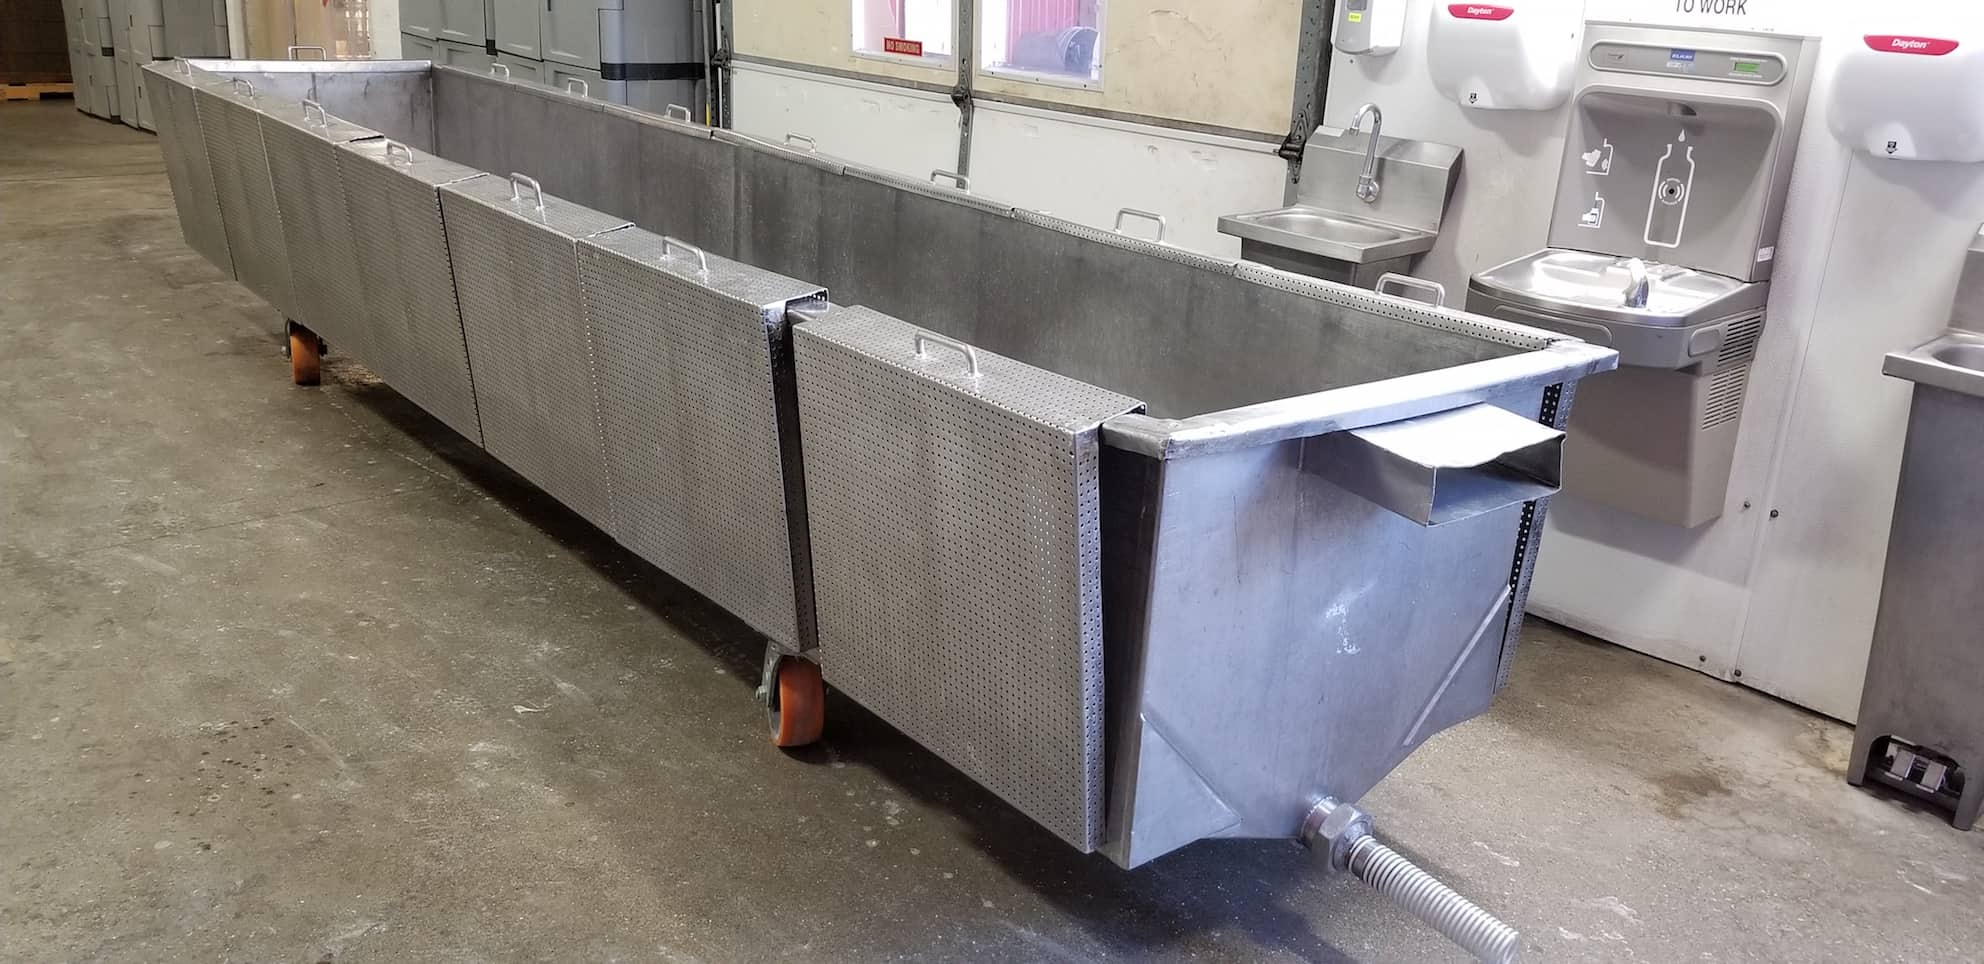 "(4) Universal 200 lb. S/S Swiss Cheese Vats, Inside Dimensions 184""L x 33""W x 24""D, with Screens"